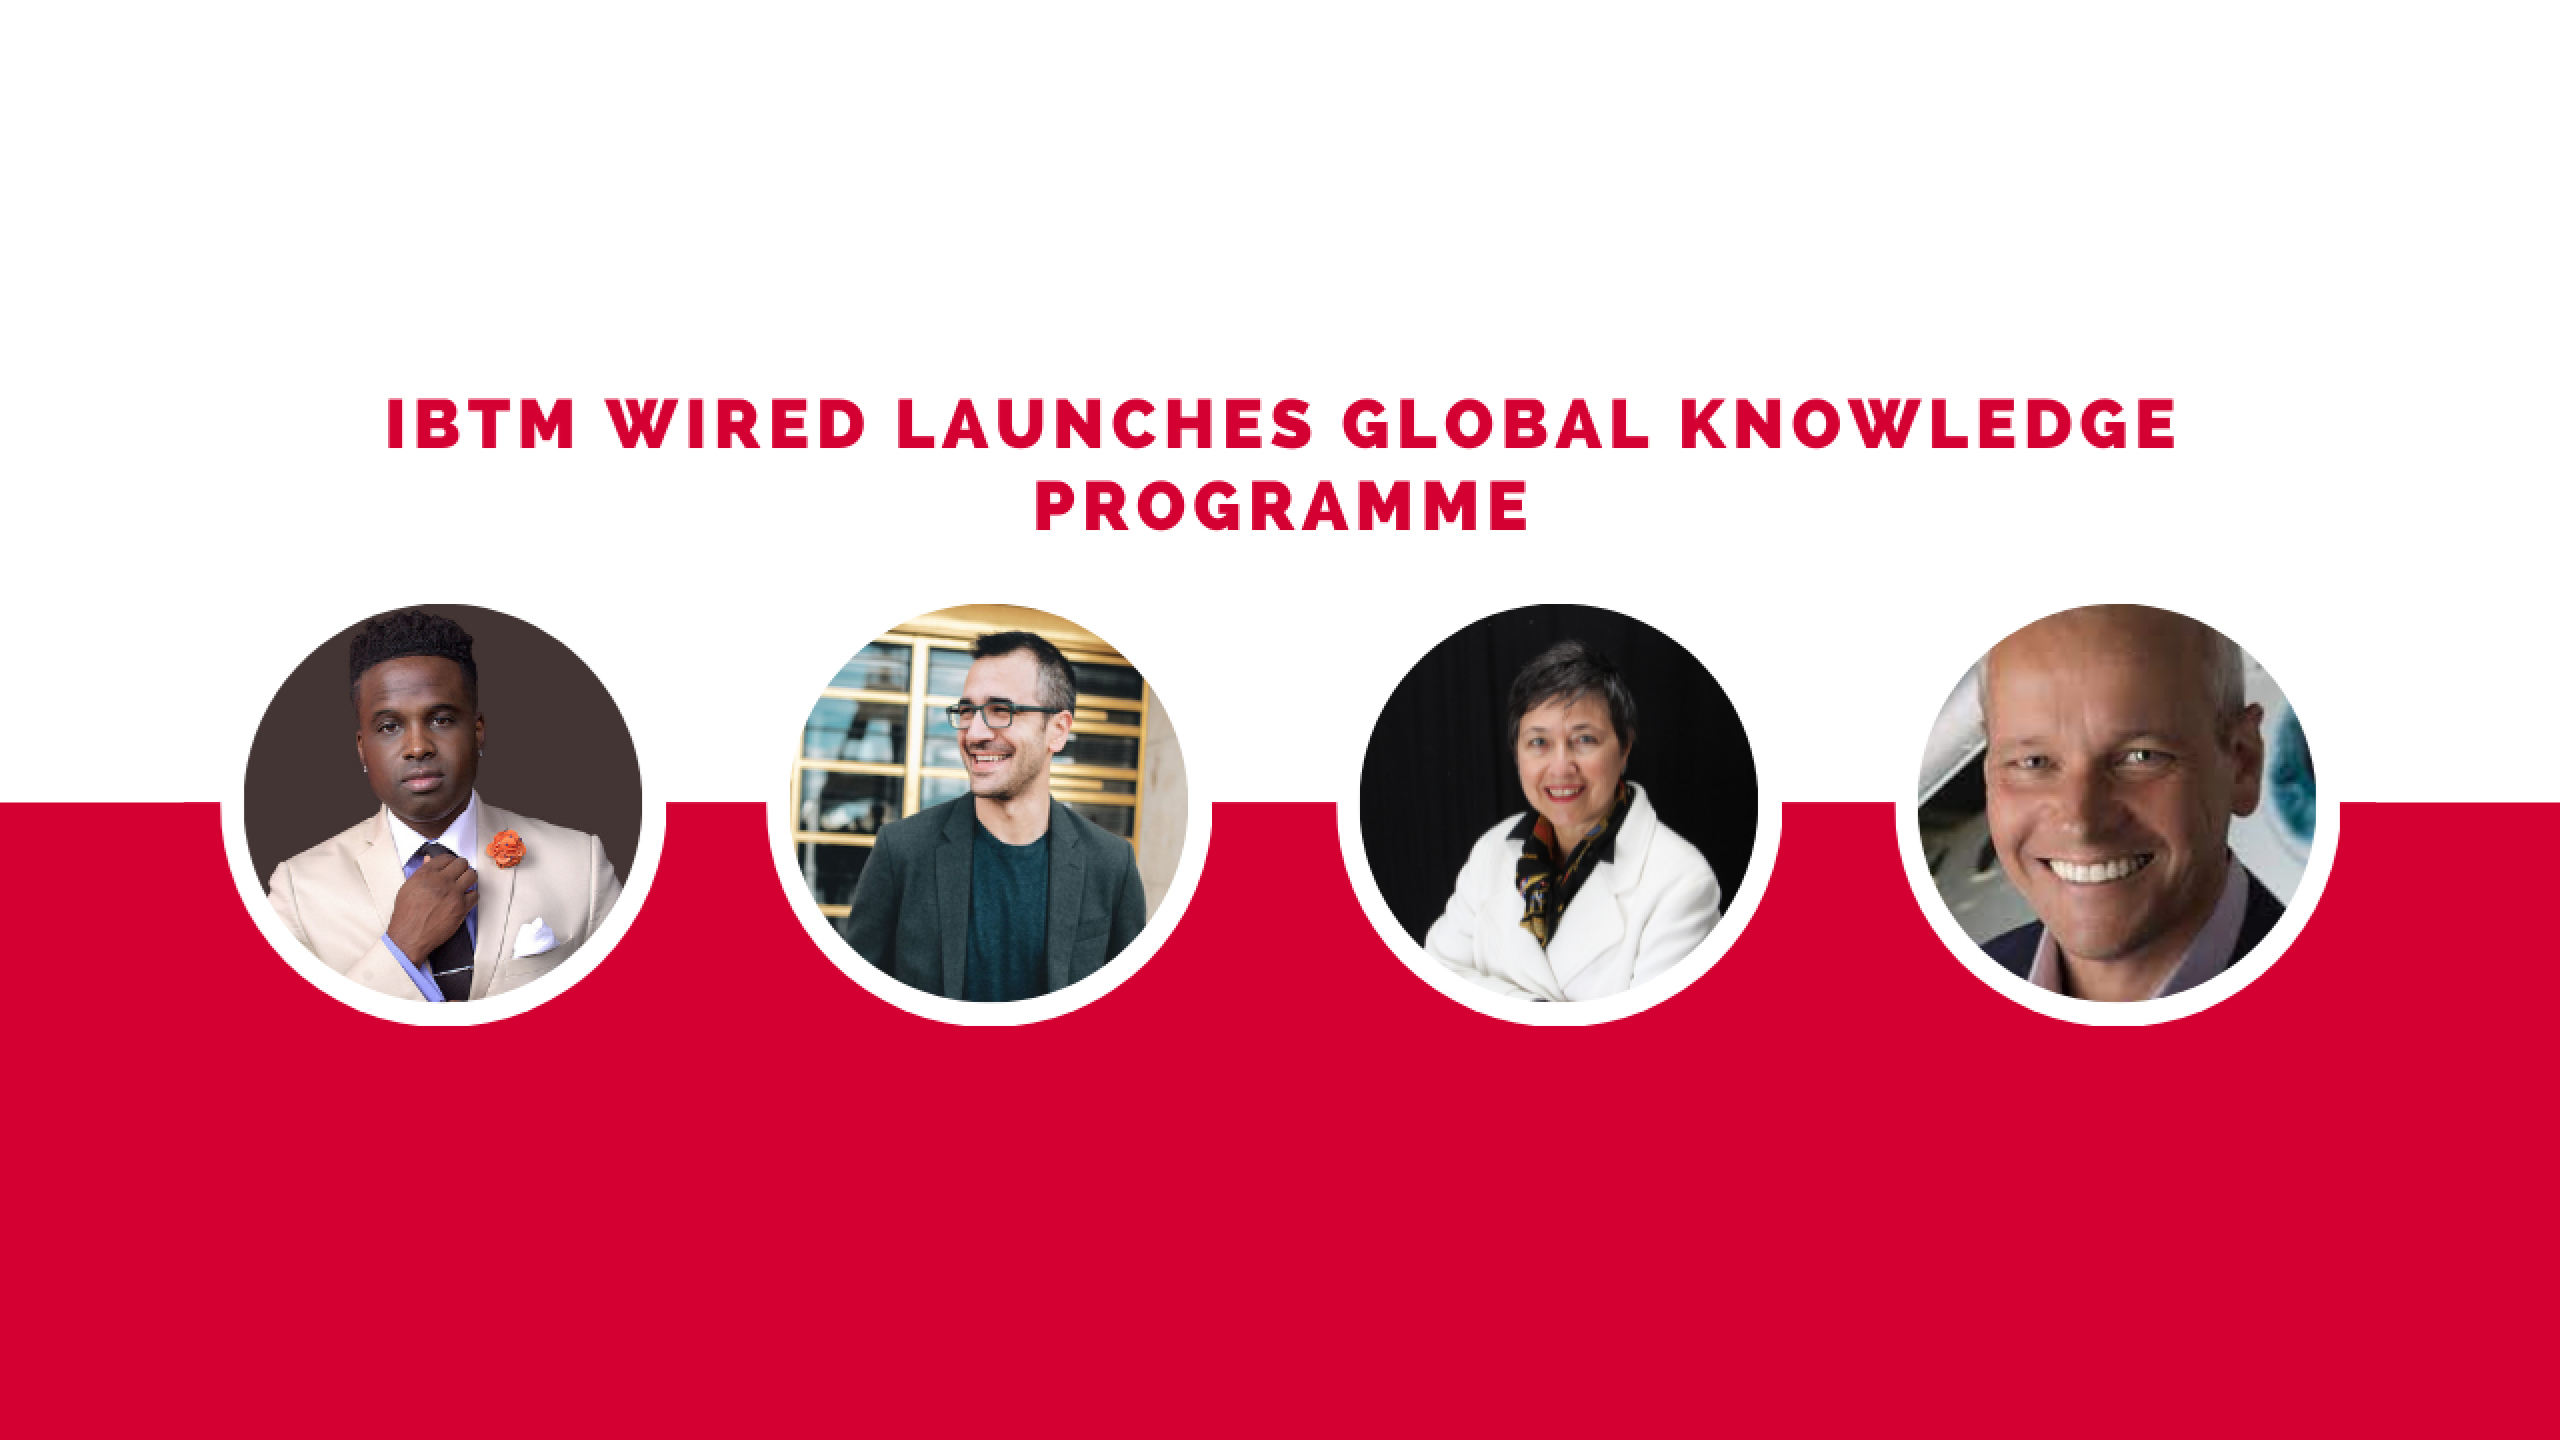 IBTM Wired launches global Knowledge Programme